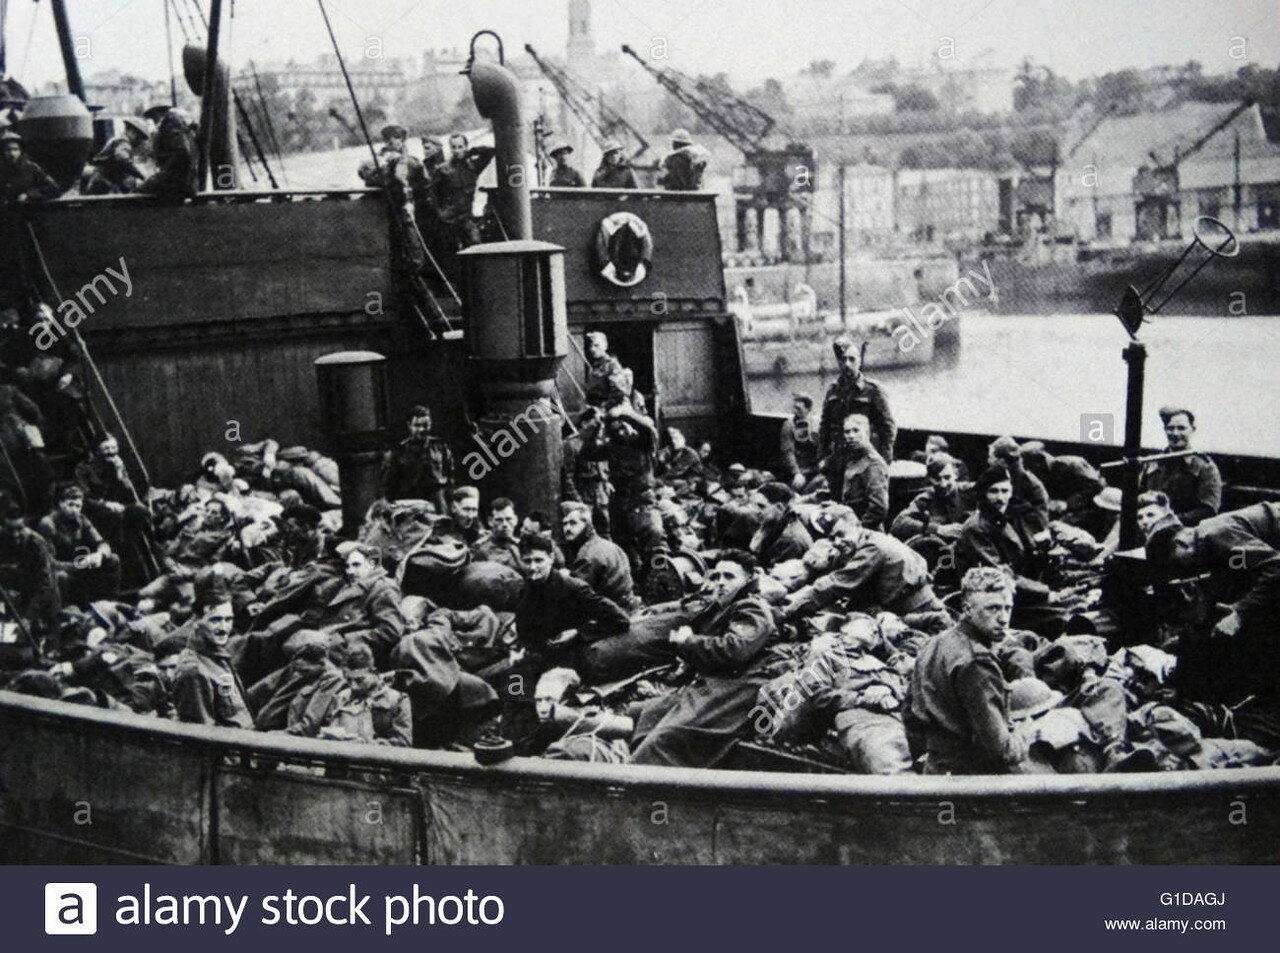 world-war-two-british-troops-evacuate-from-france-as-the-german-army-G1DAGJ.jpg